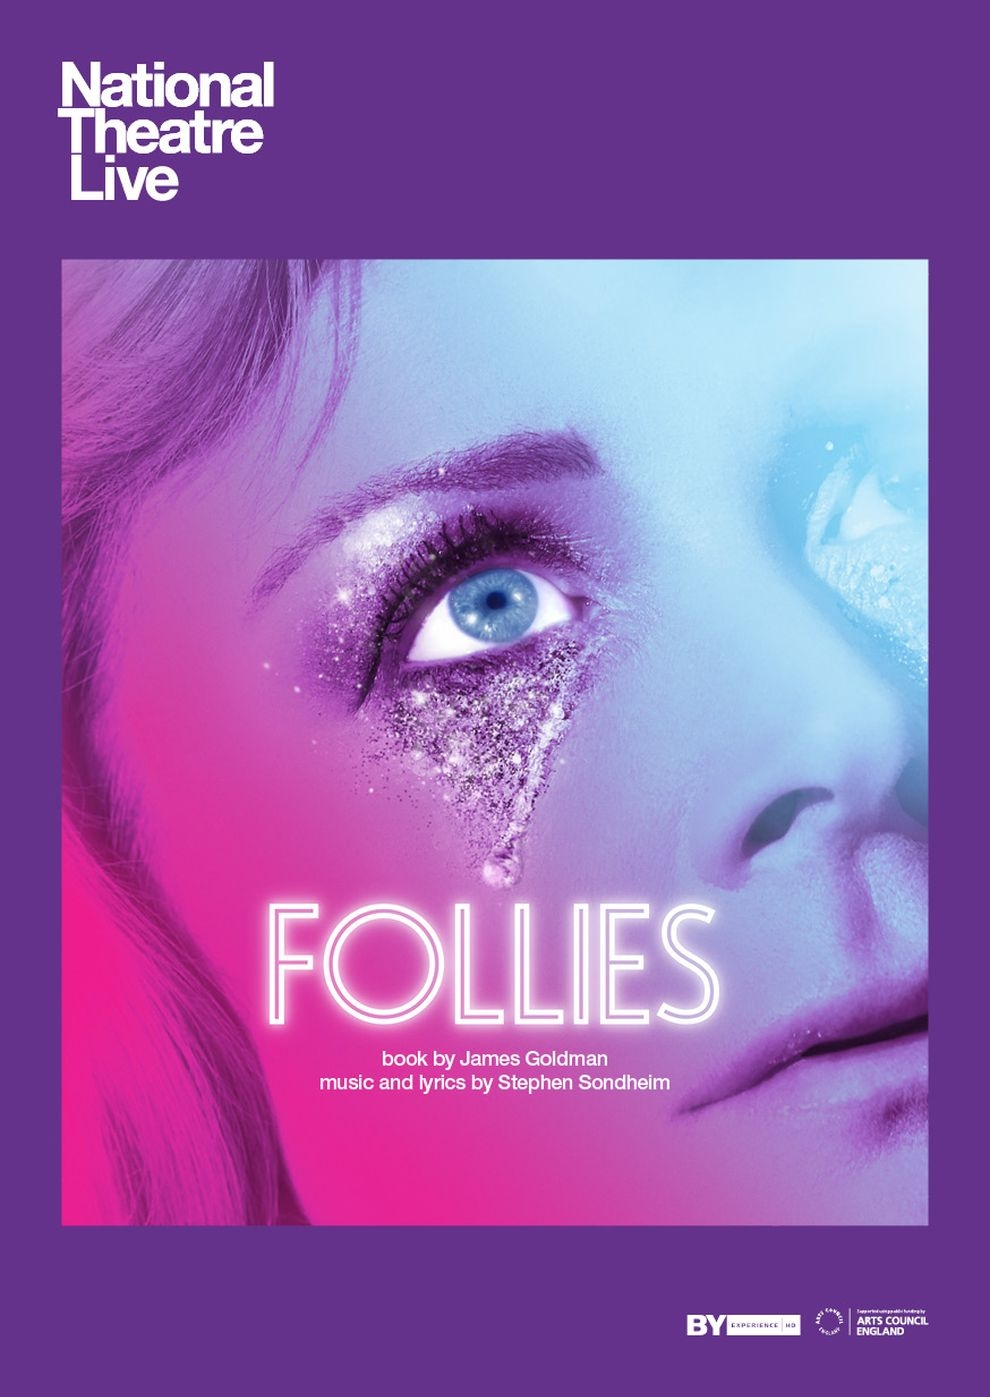 National Theatre London: Follies (Poster)